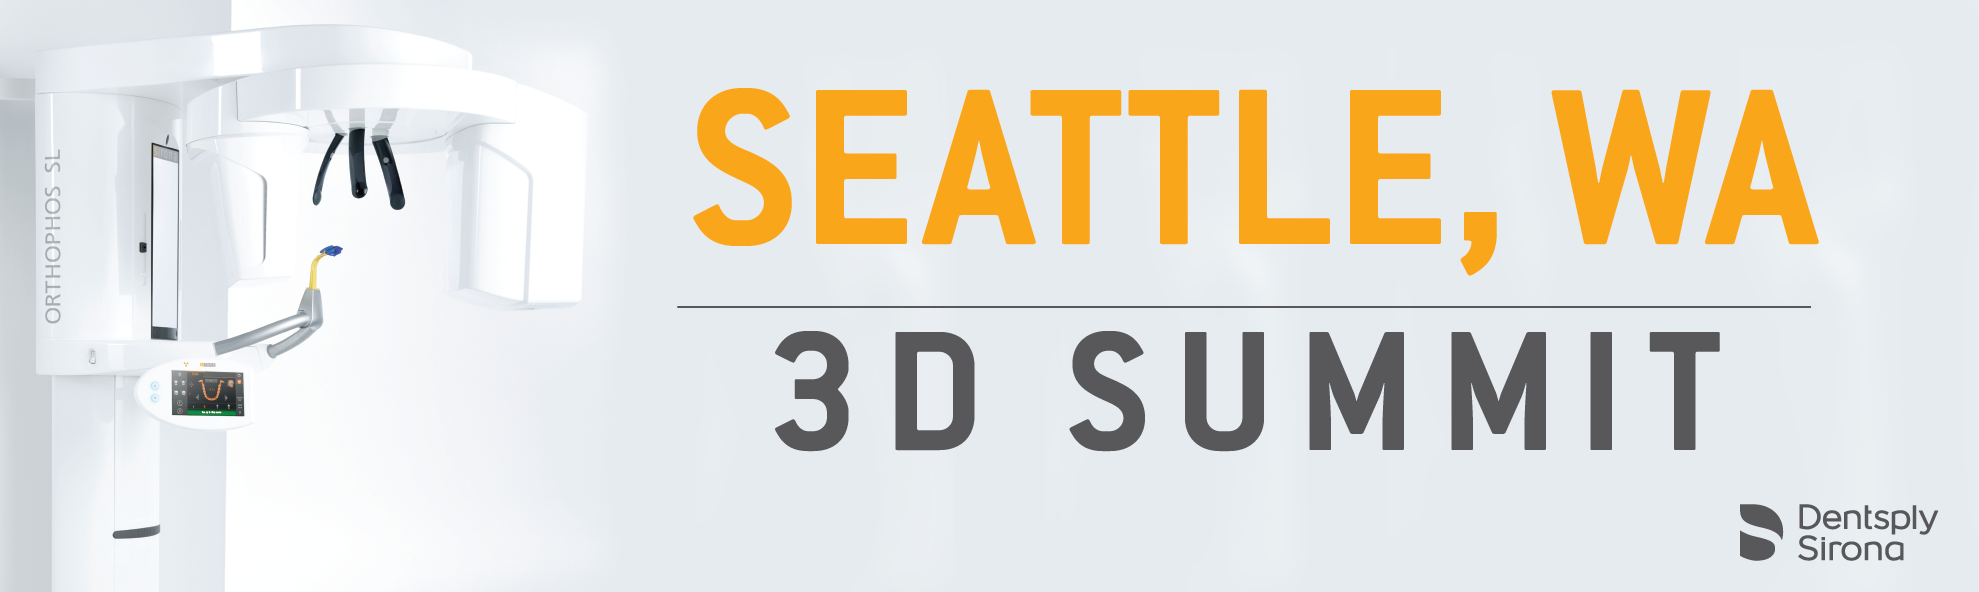 Seattle 3D Summit